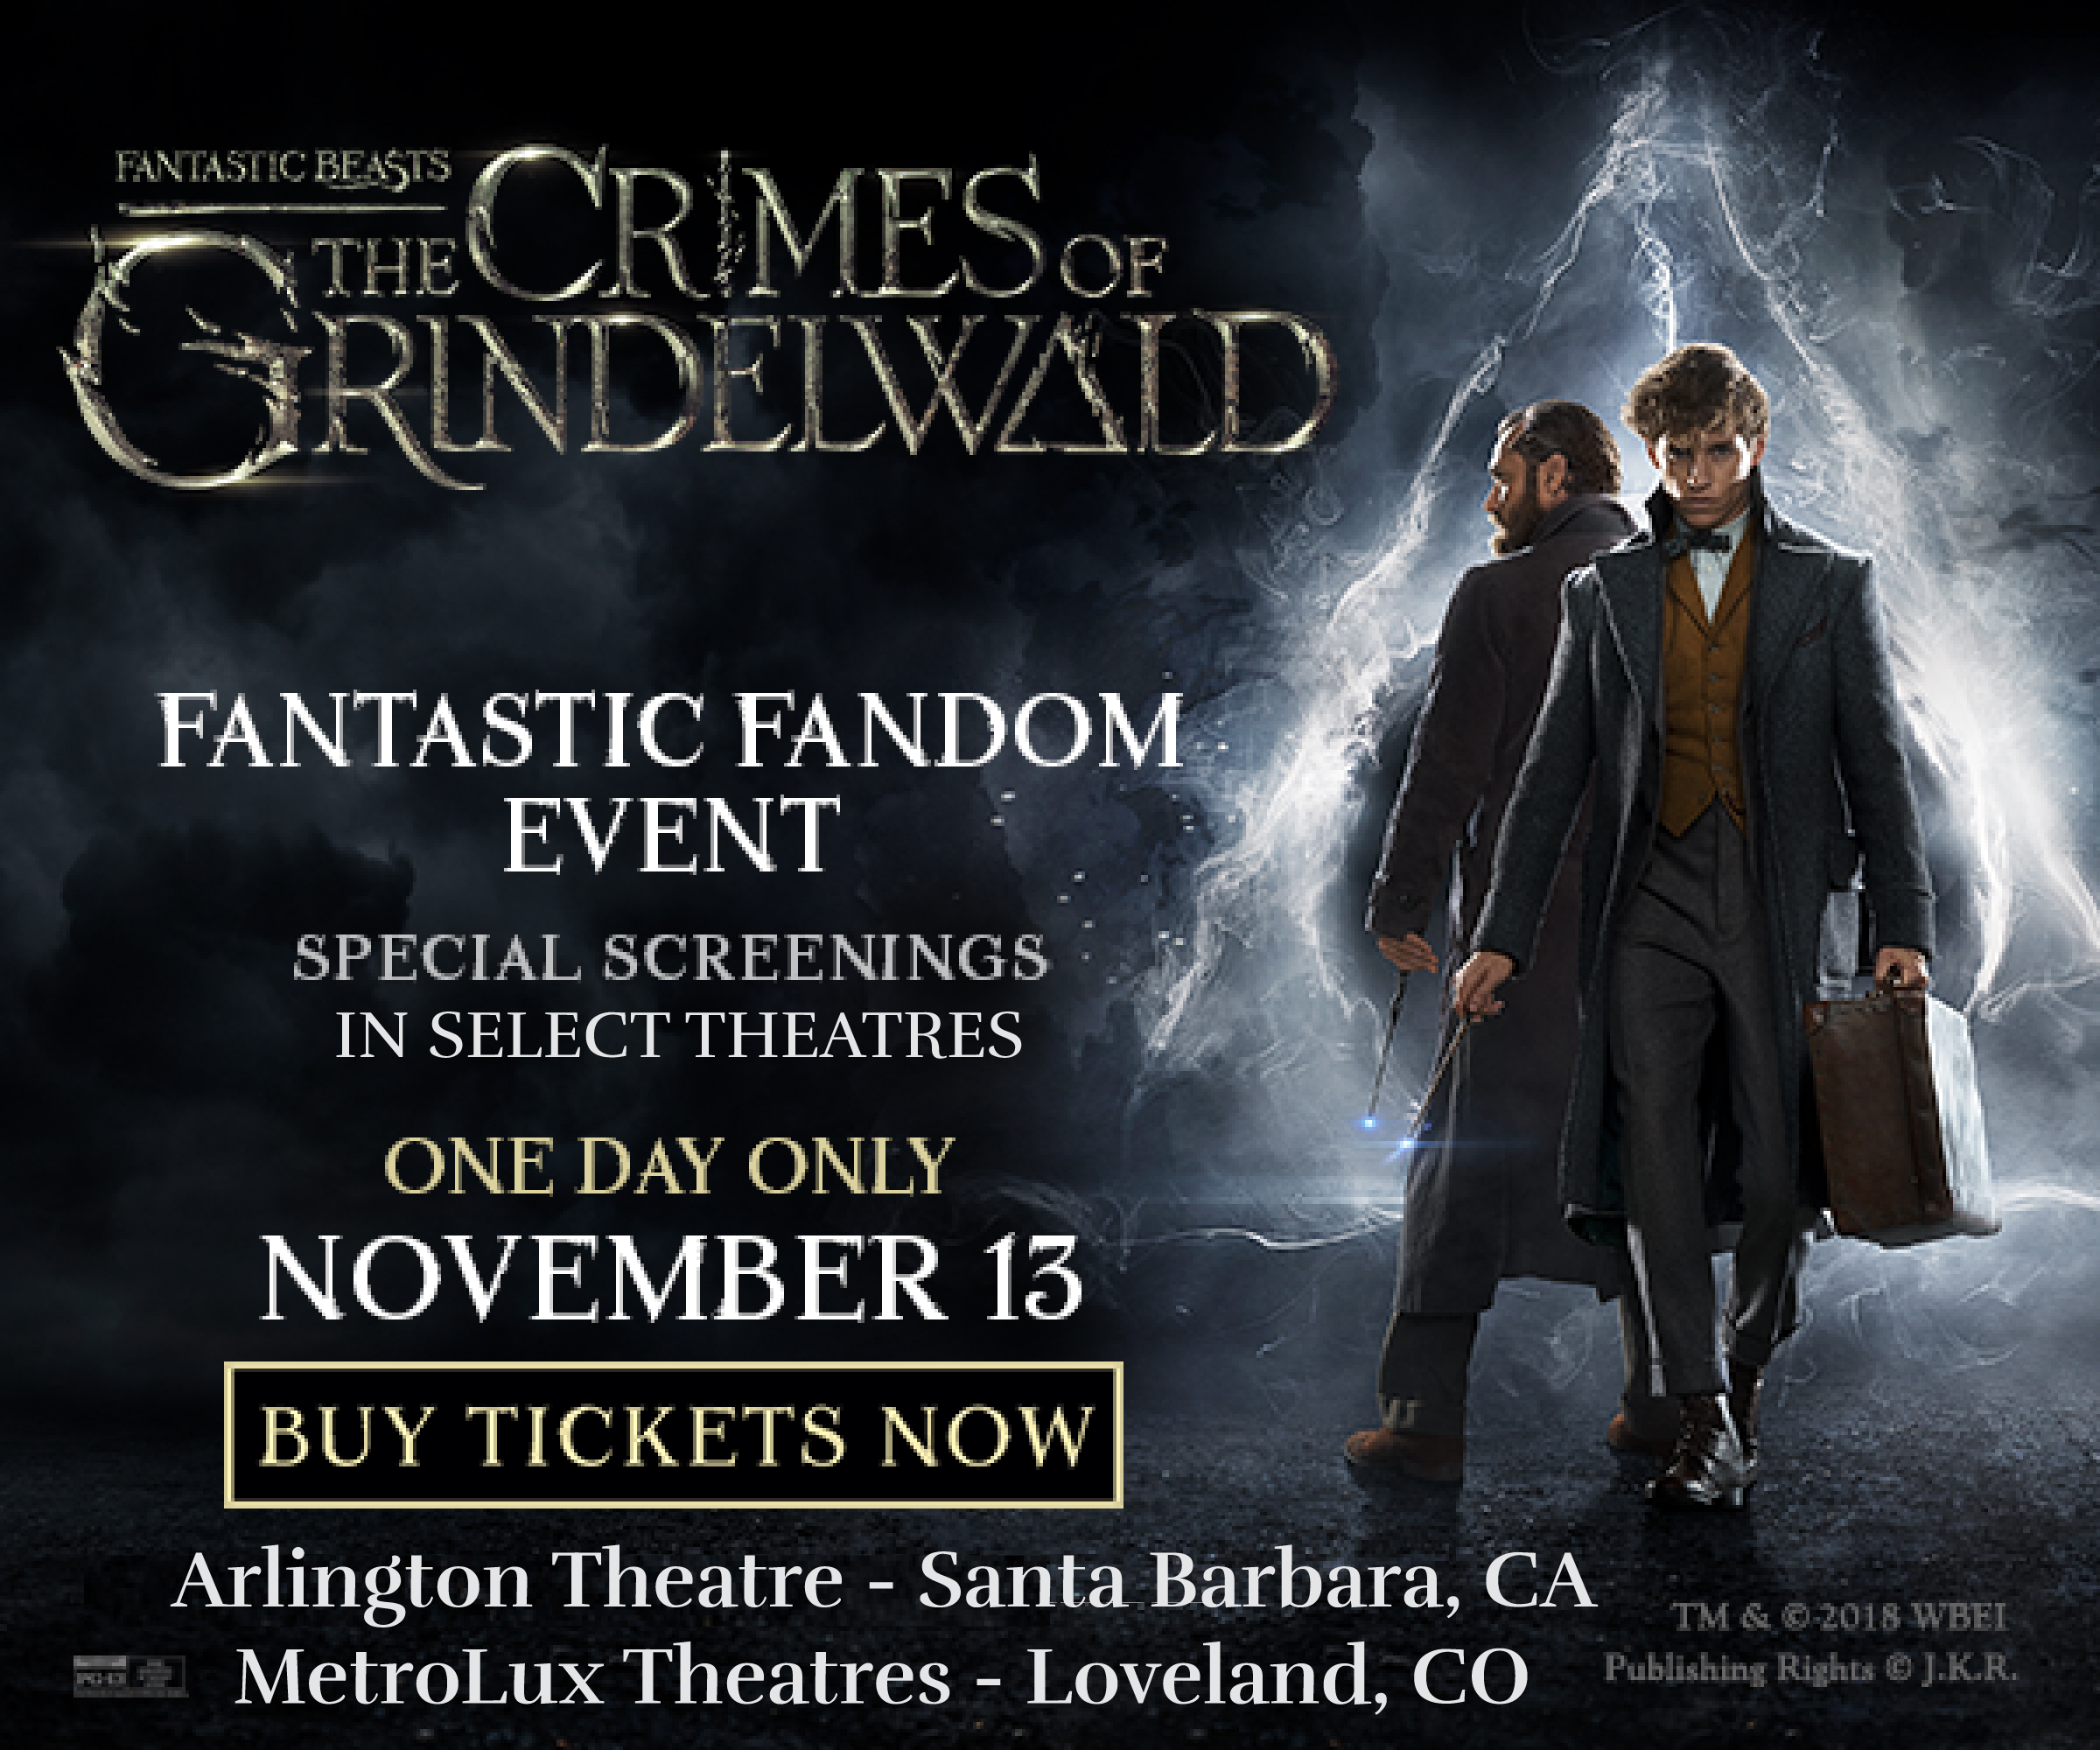 Fantastic Fandom Event! Fantastic Beasts: The Crimes of Grindelwald